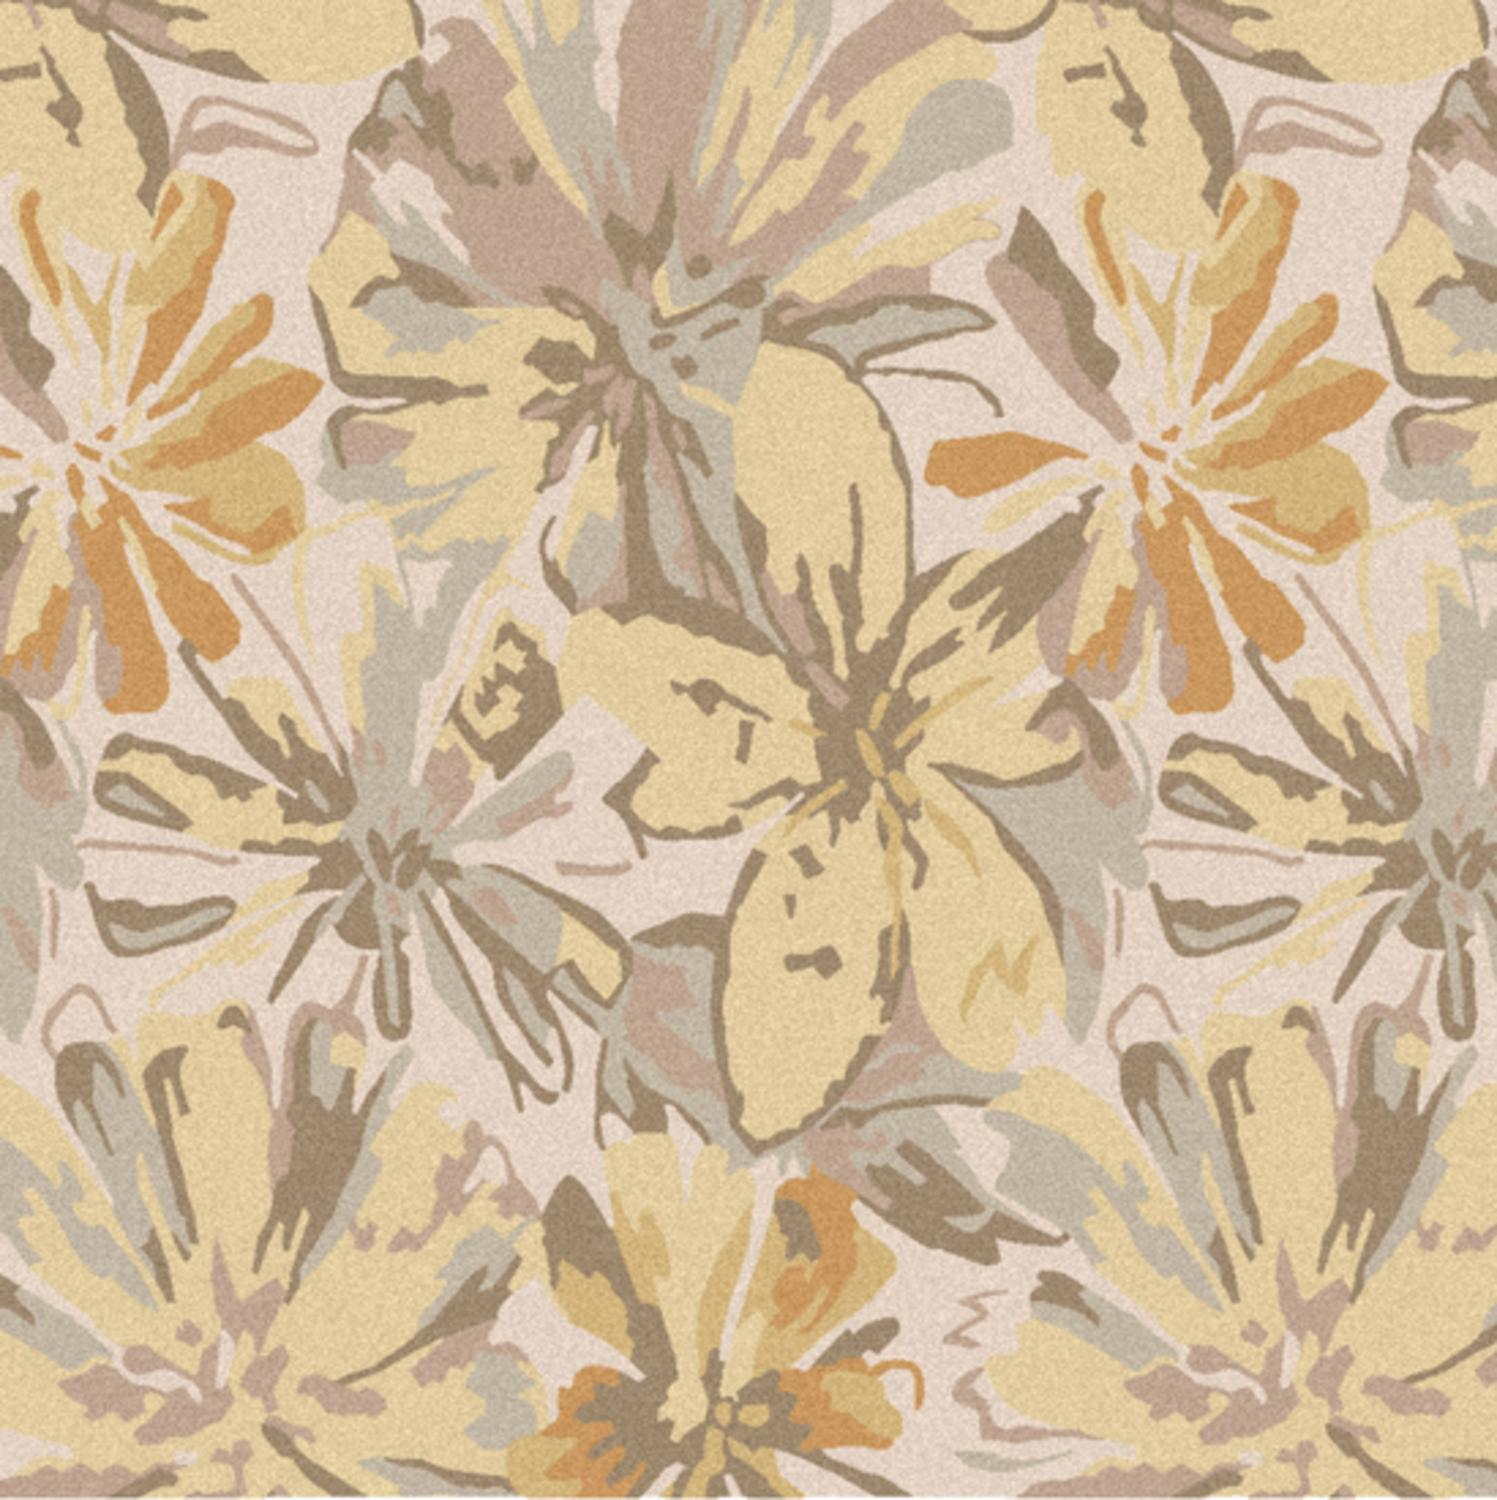 9.75' x 9.75' Daisy Dream Gray and Yellow Flower Square Wool Area Throw Rug